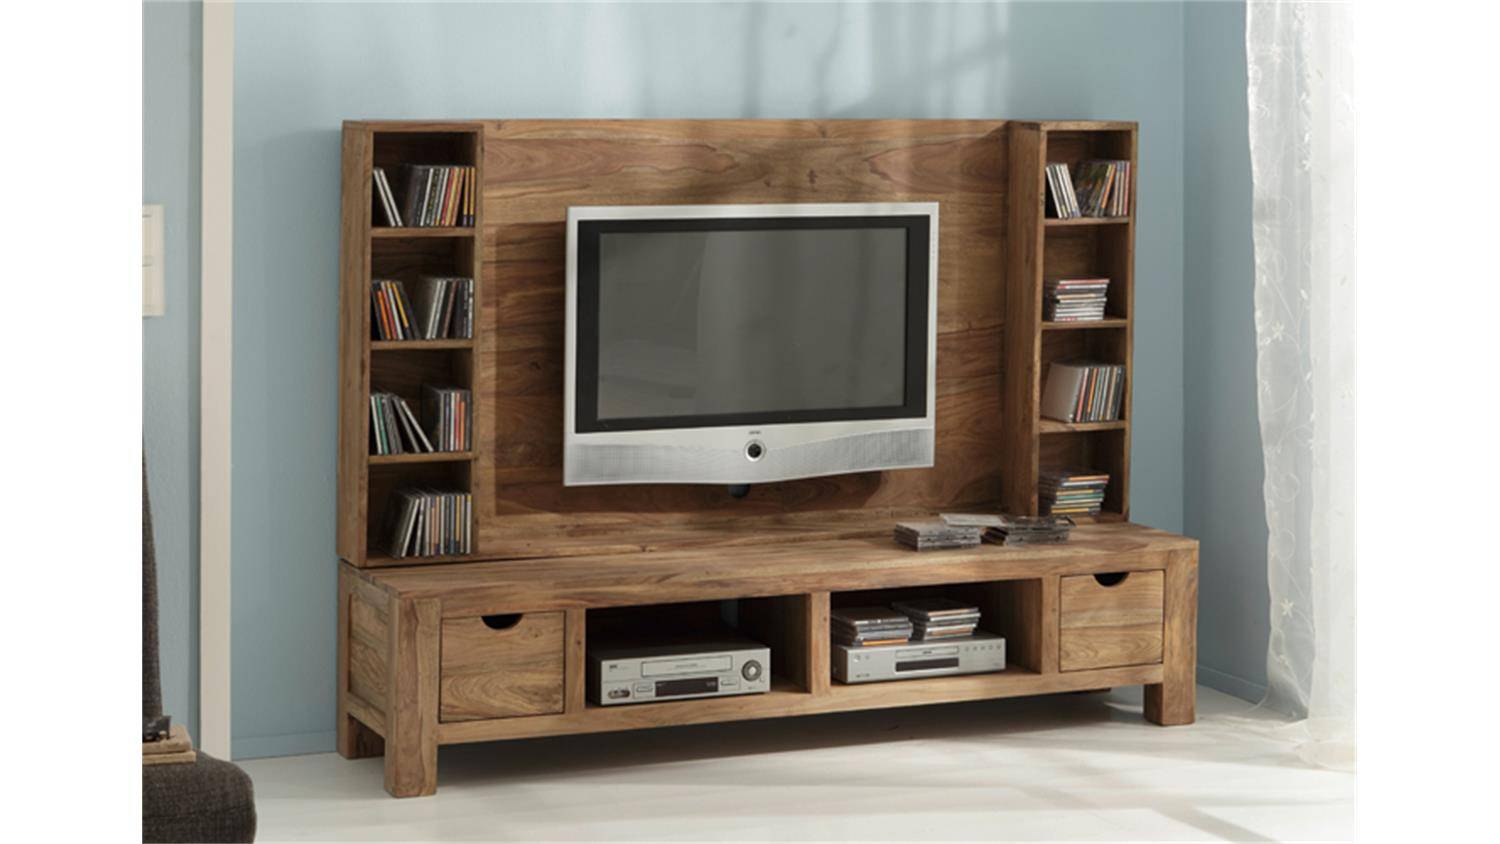 tv wand landhaus bestseller shop f r m bel und einrichtungen. Black Bedroom Furniture Sets. Home Design Ideas